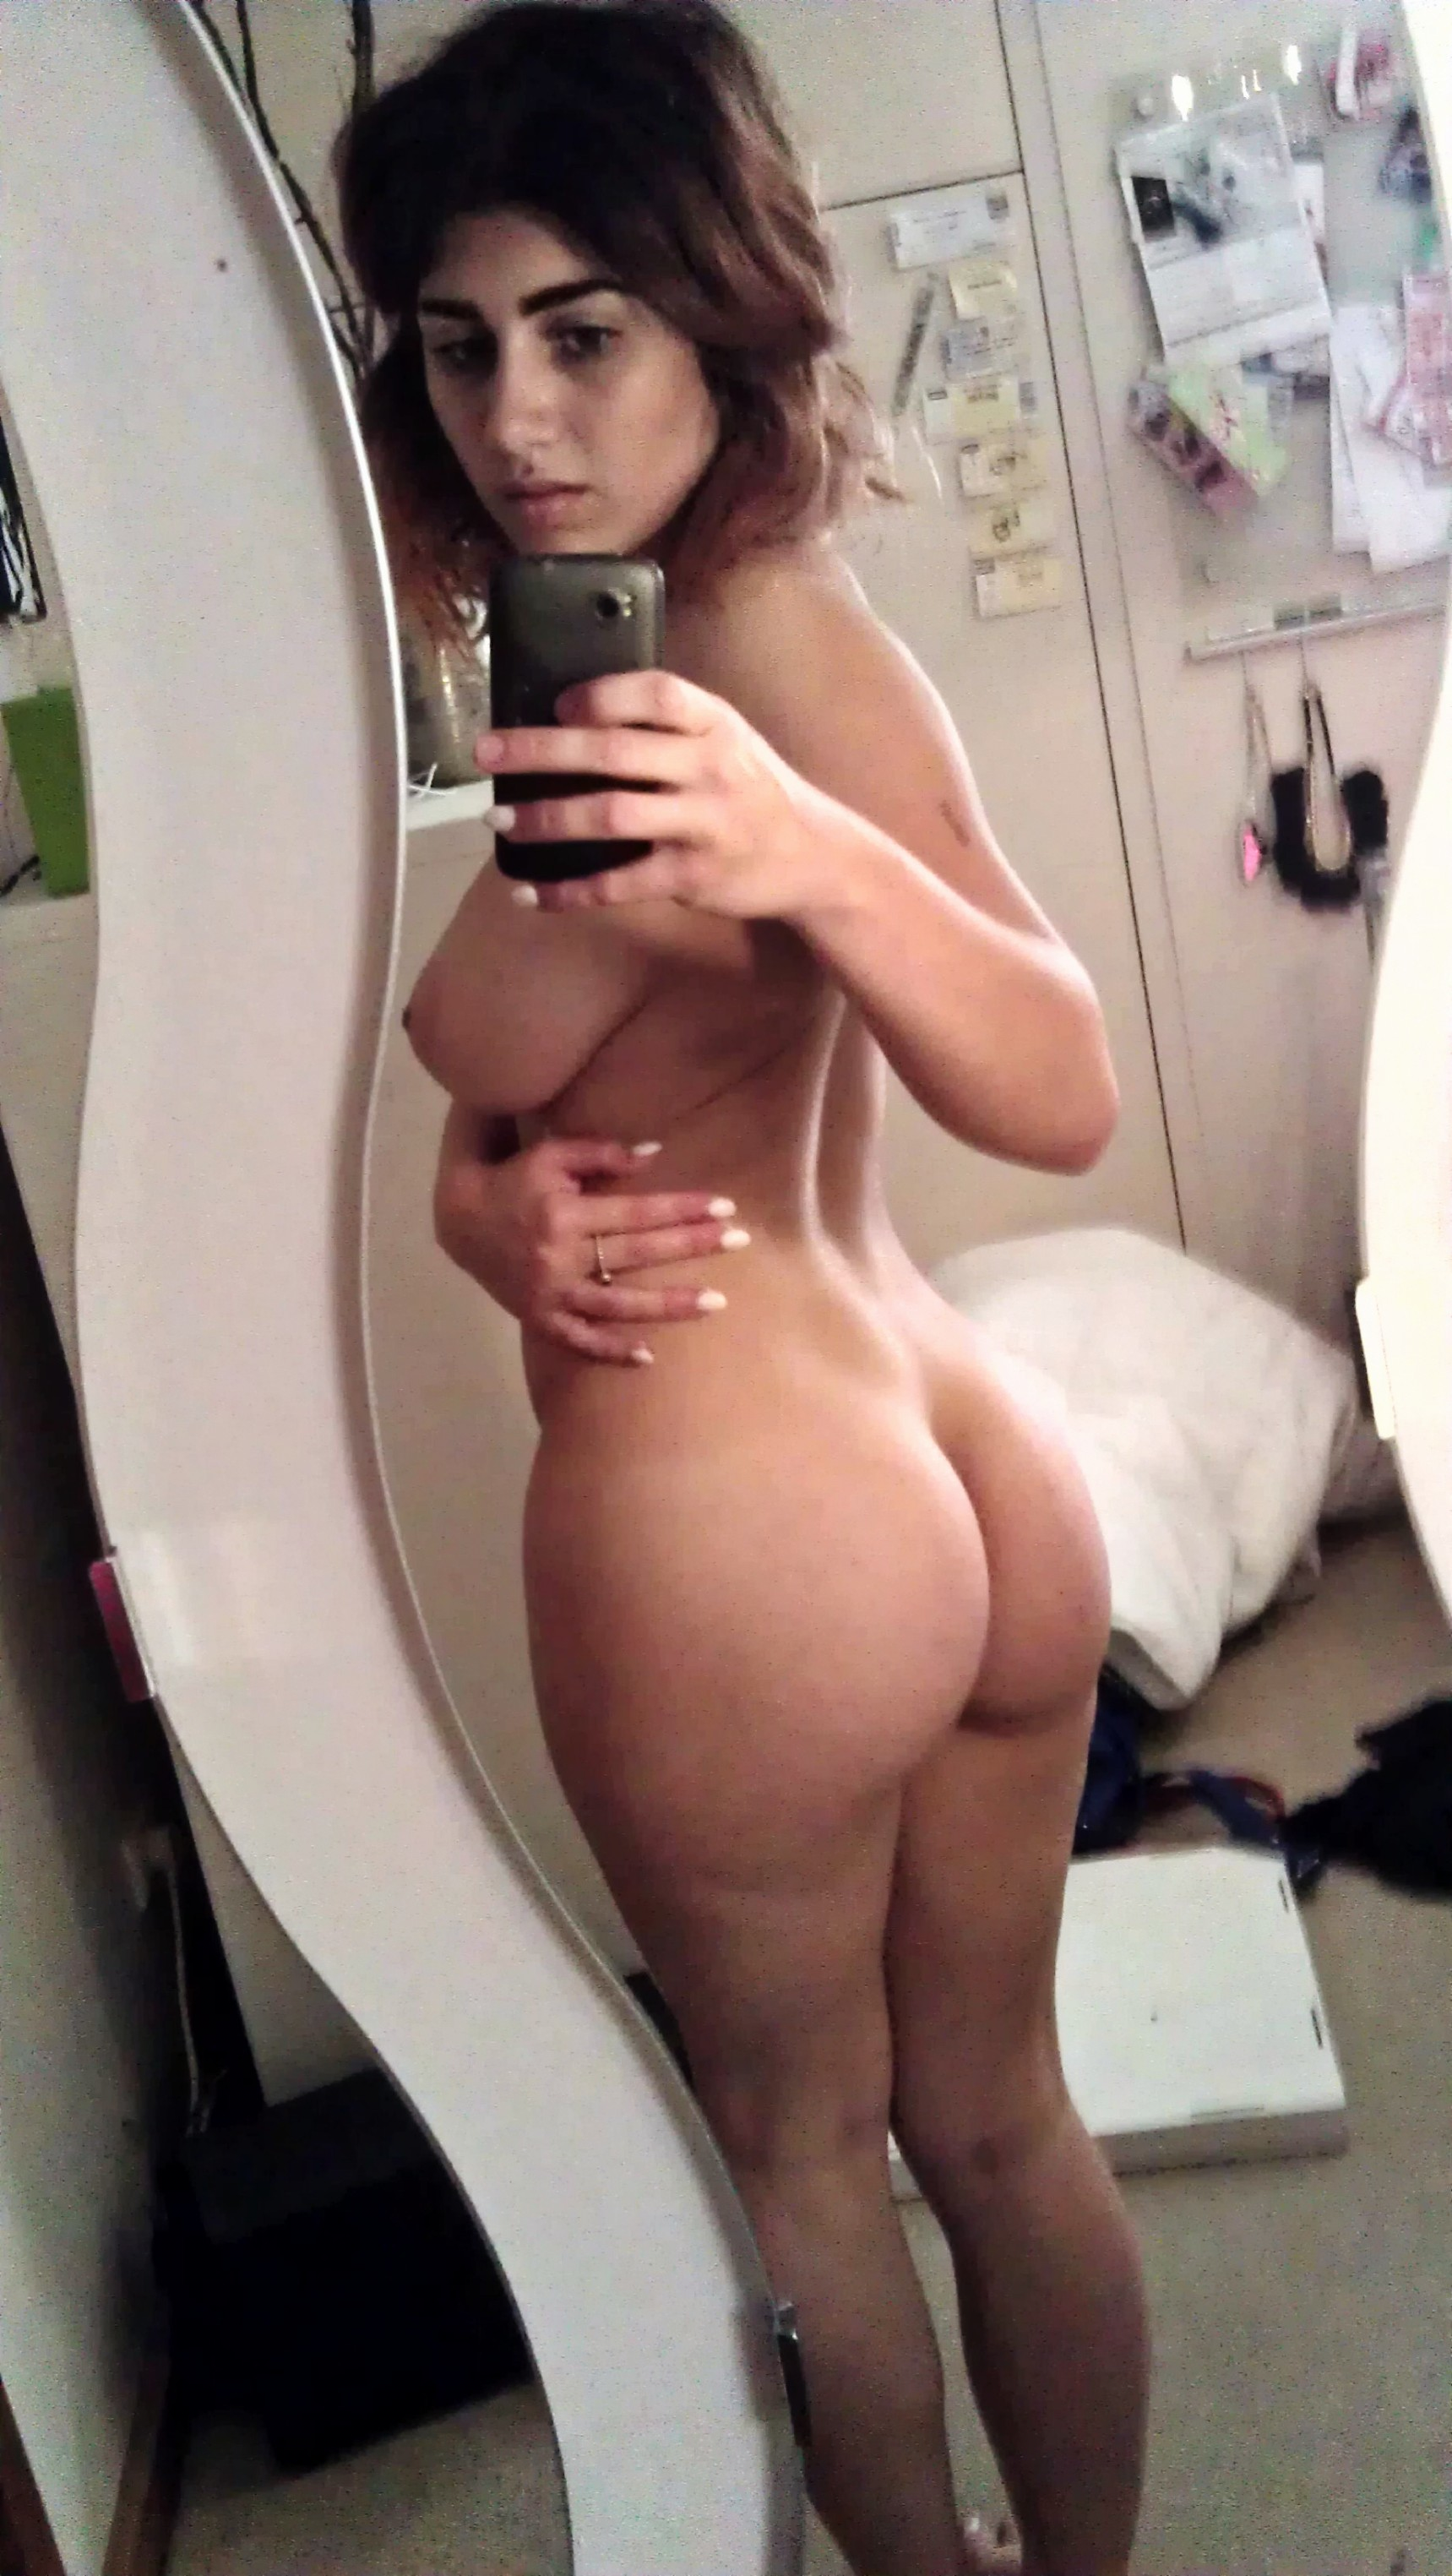 Yongest xxx nude pics of girls ass in mirror girls having